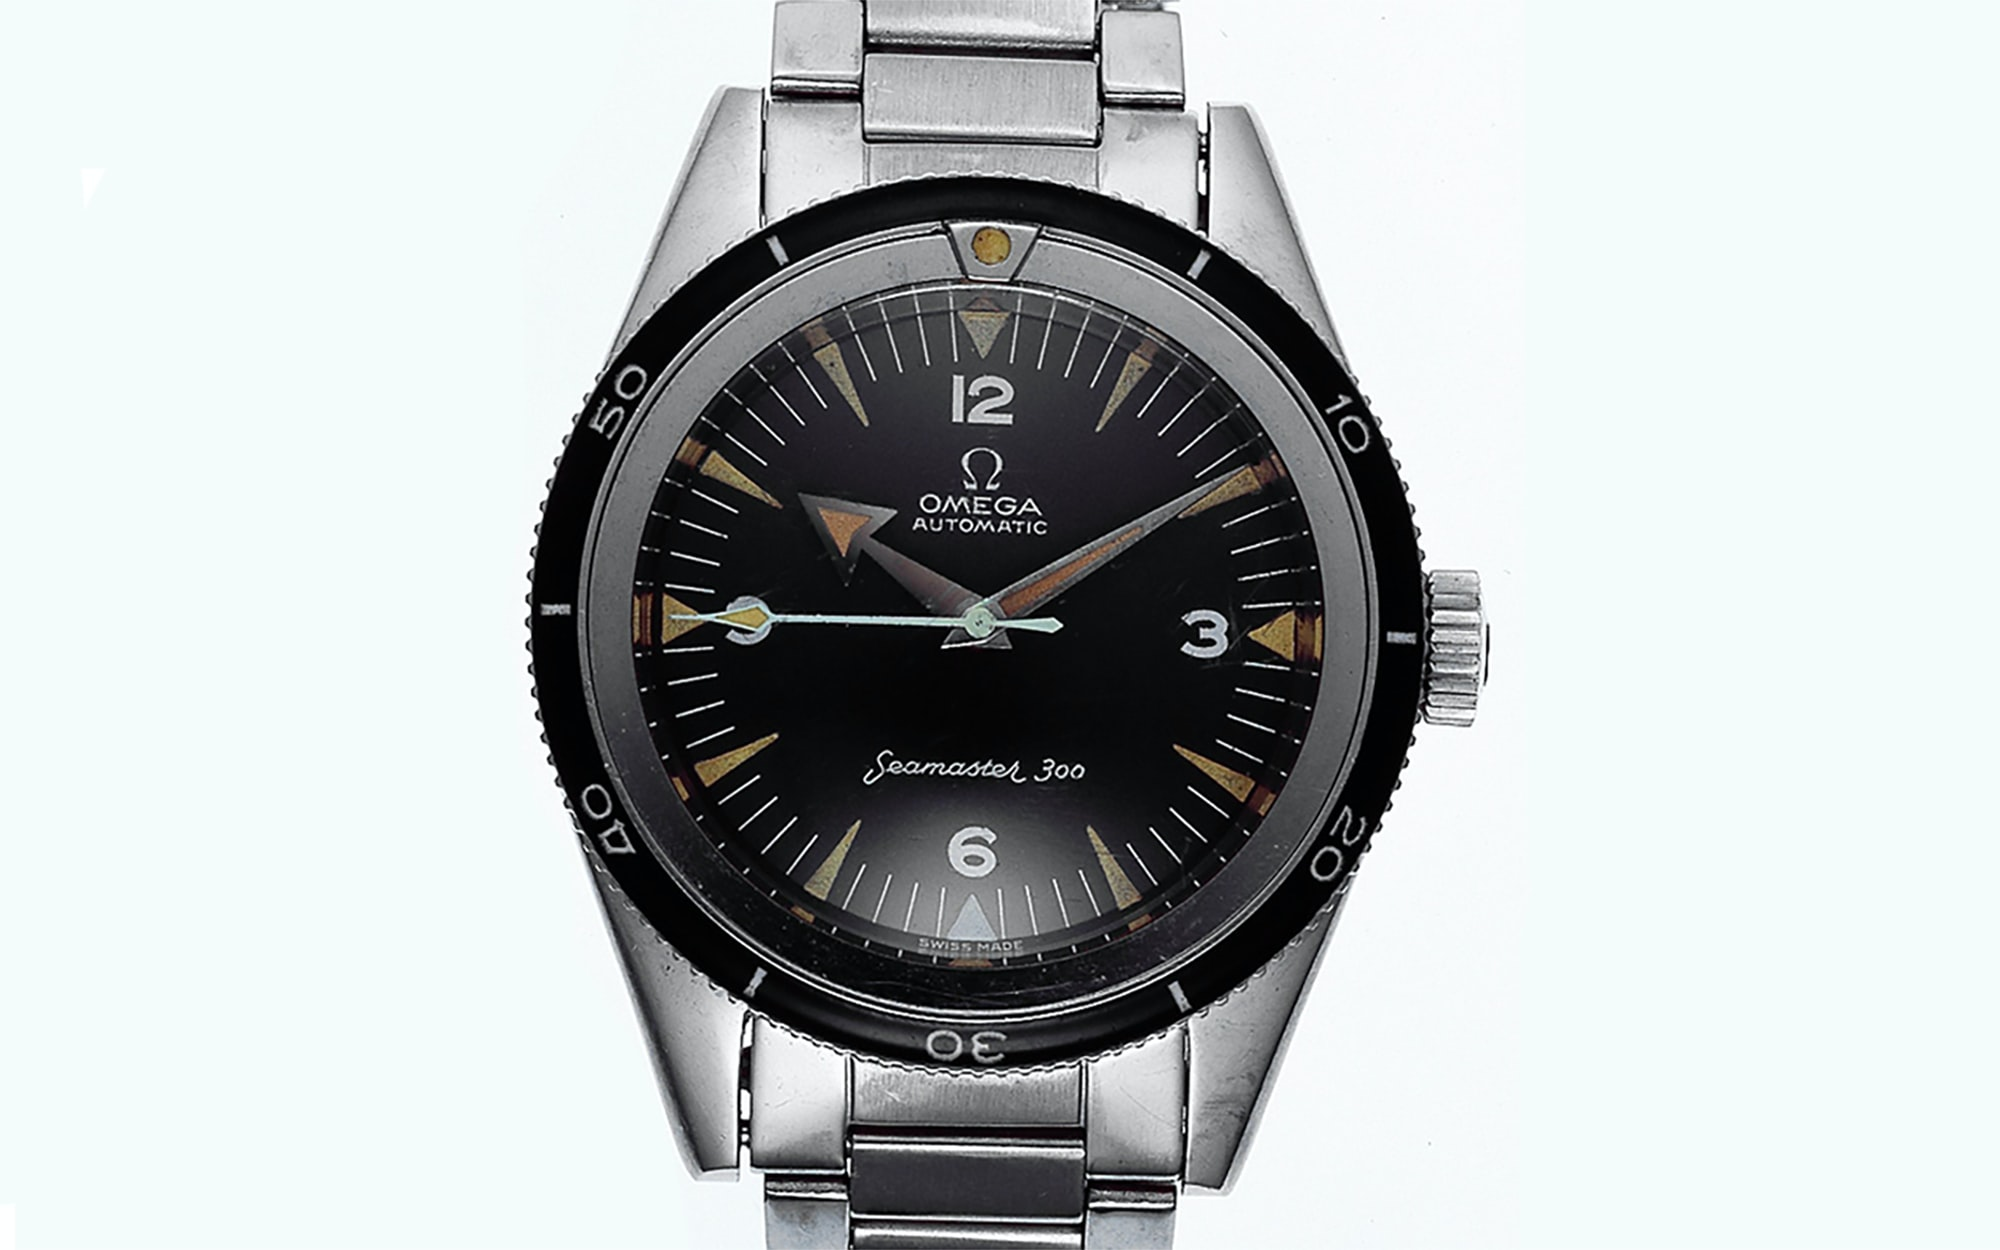 Download: Omega Seamaster 300 in the Test